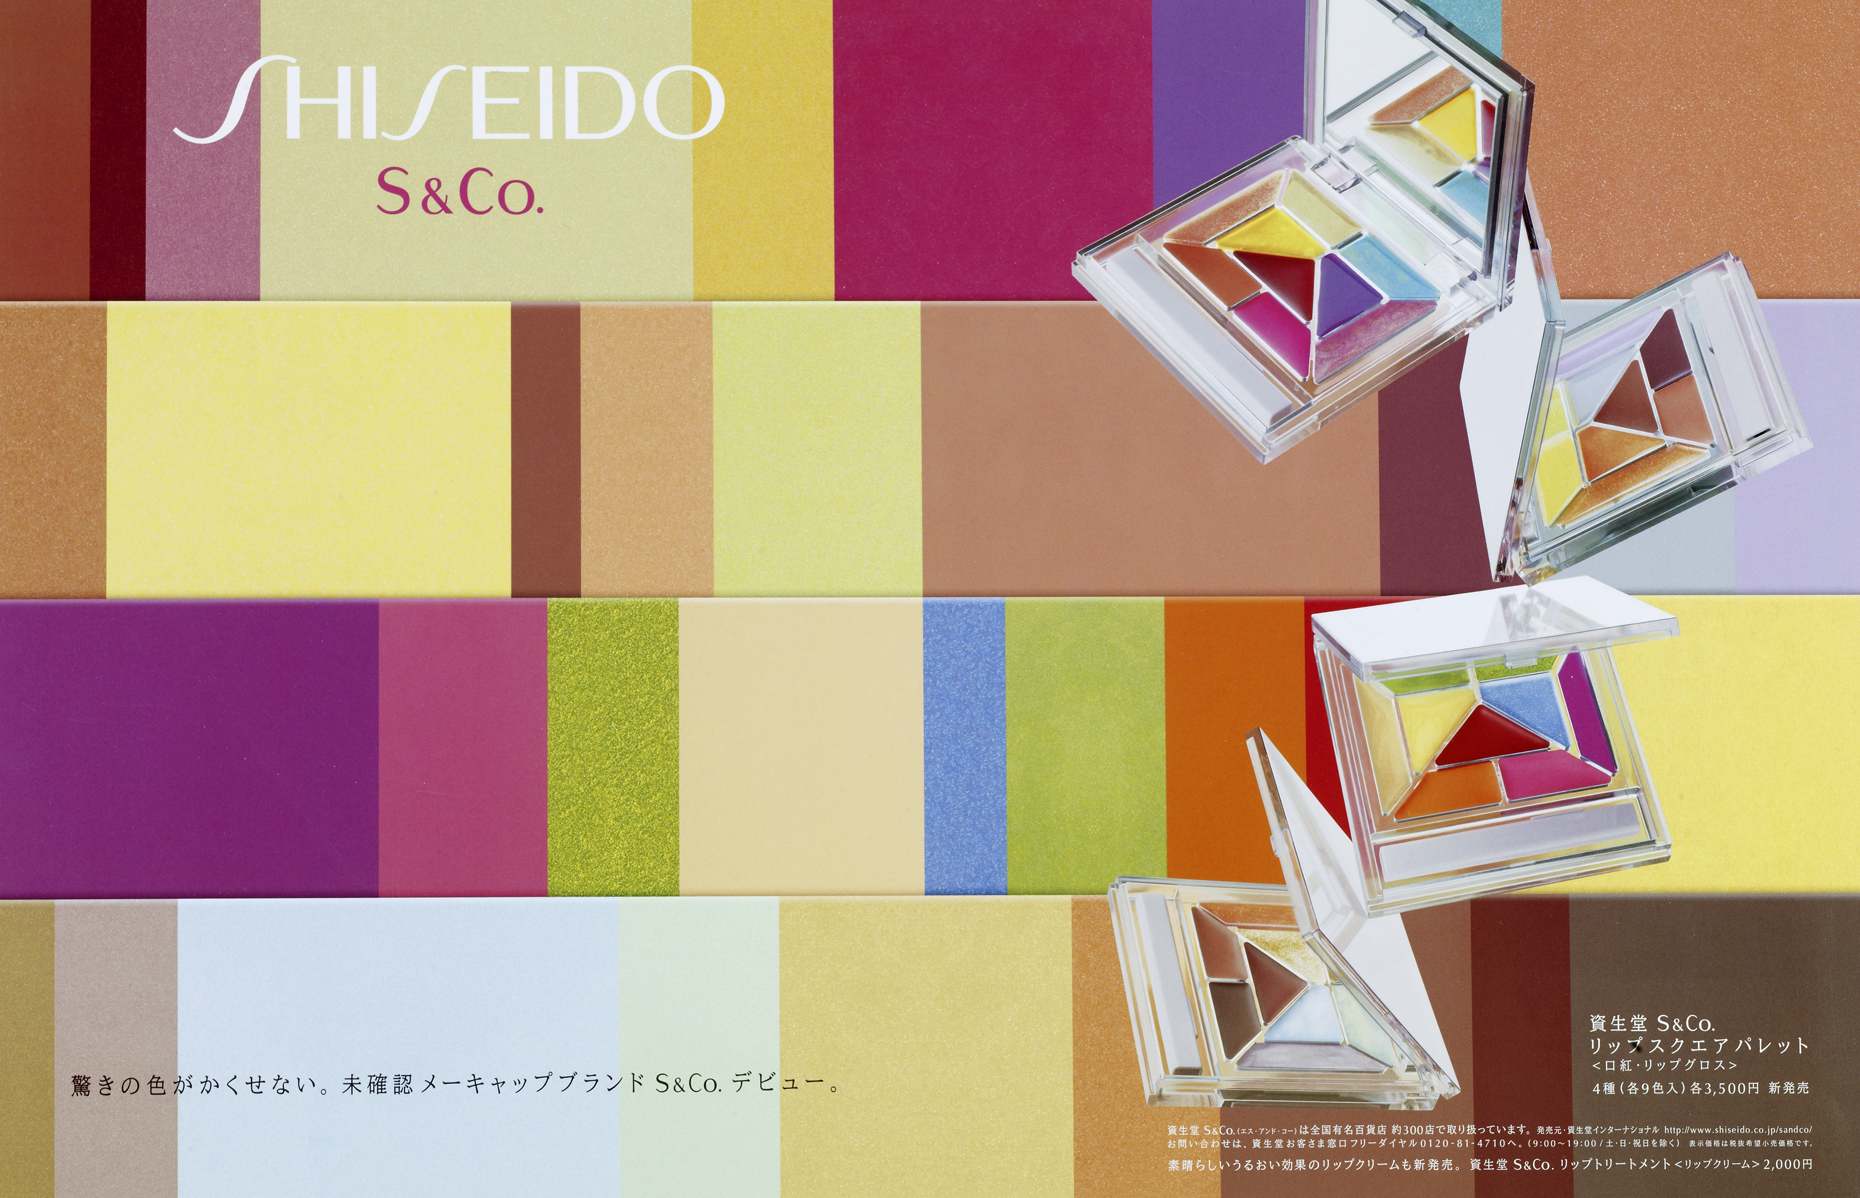 P shiseido make-up